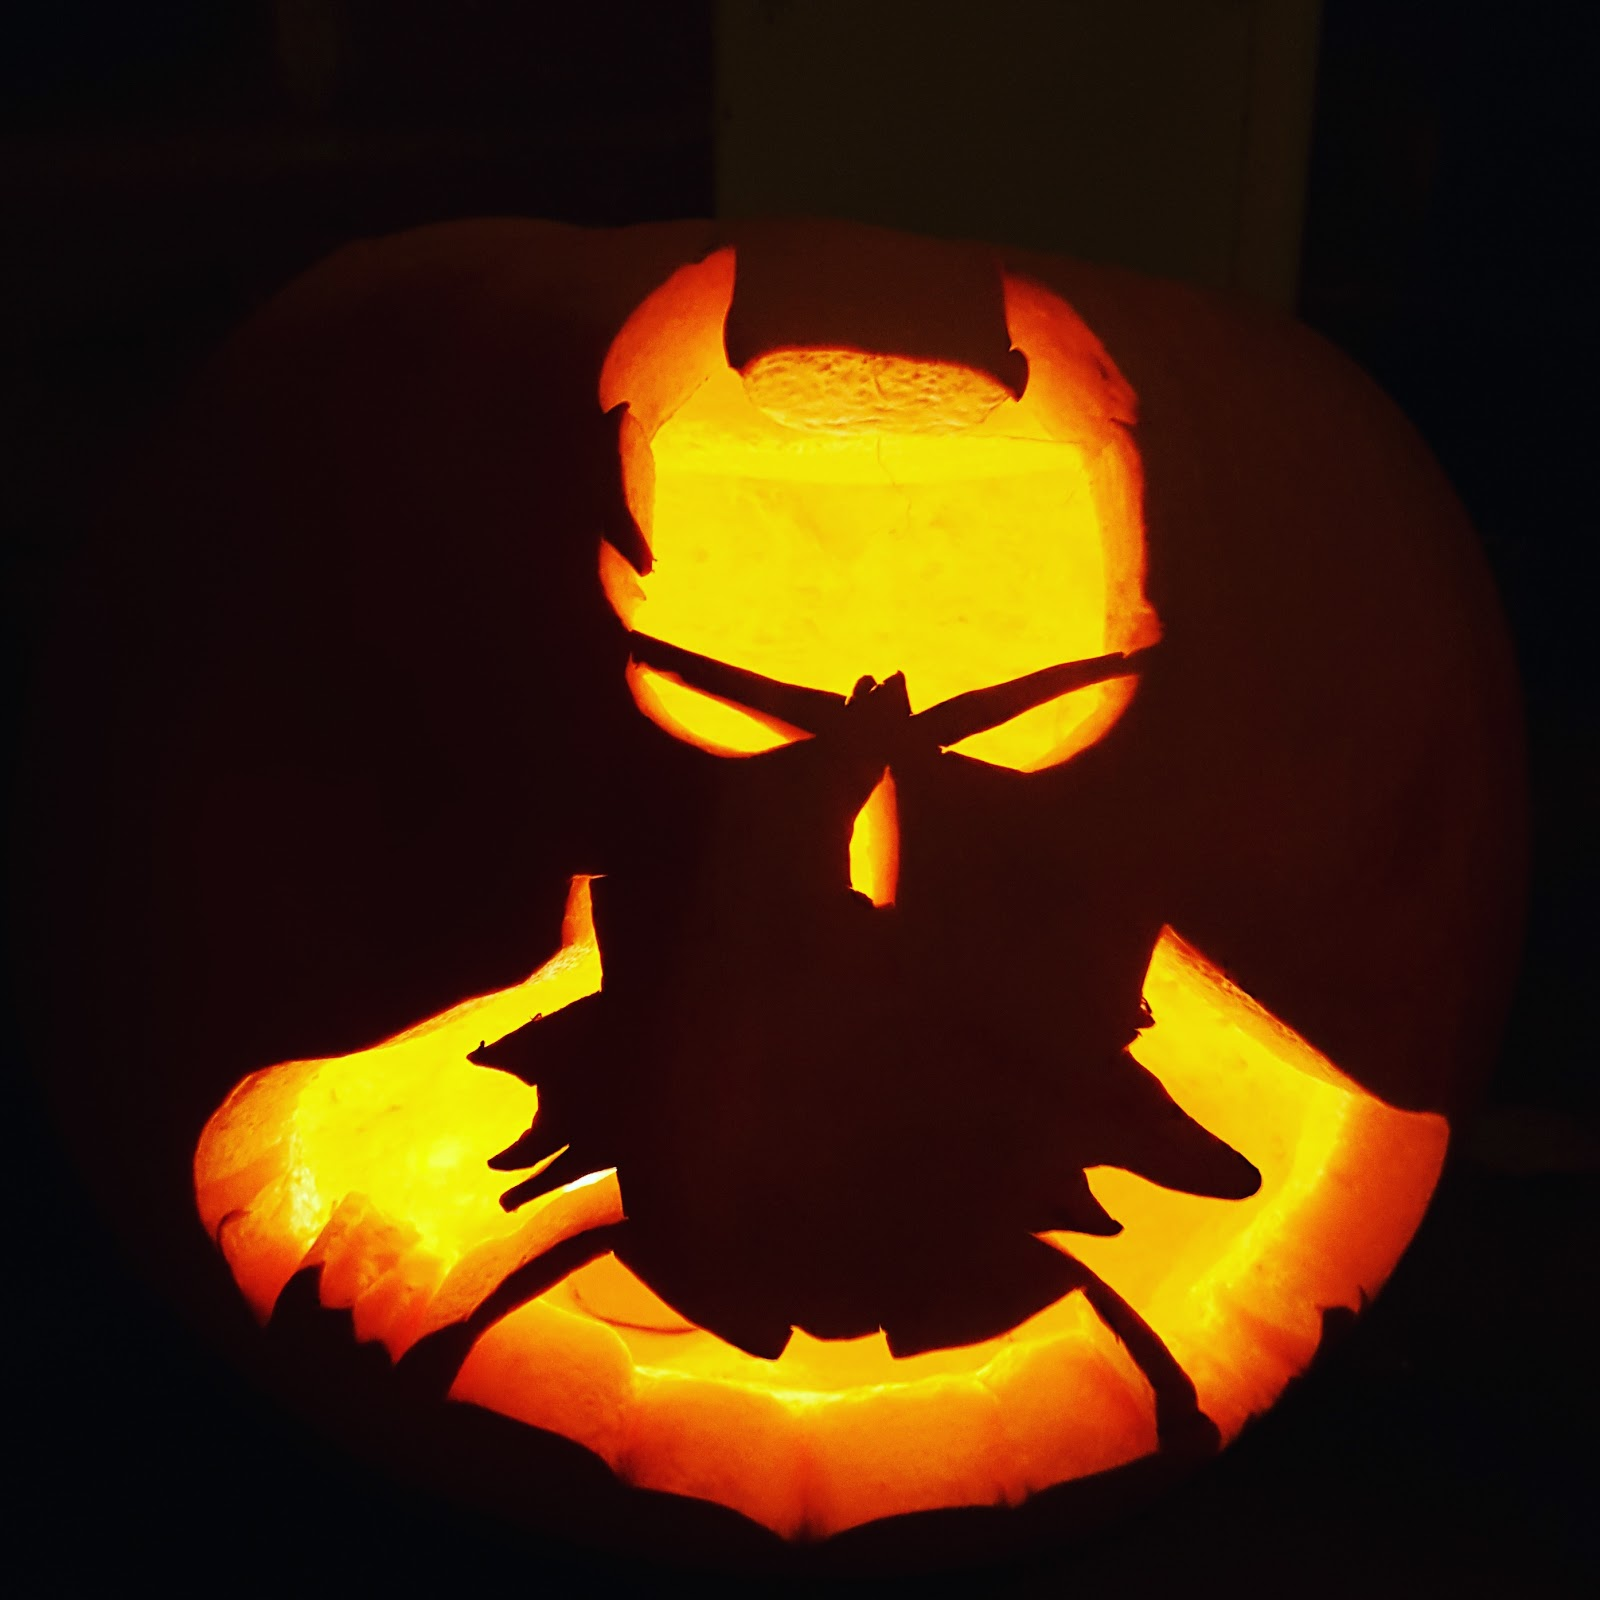 A Batman Inspire Cut Out Pumpkin